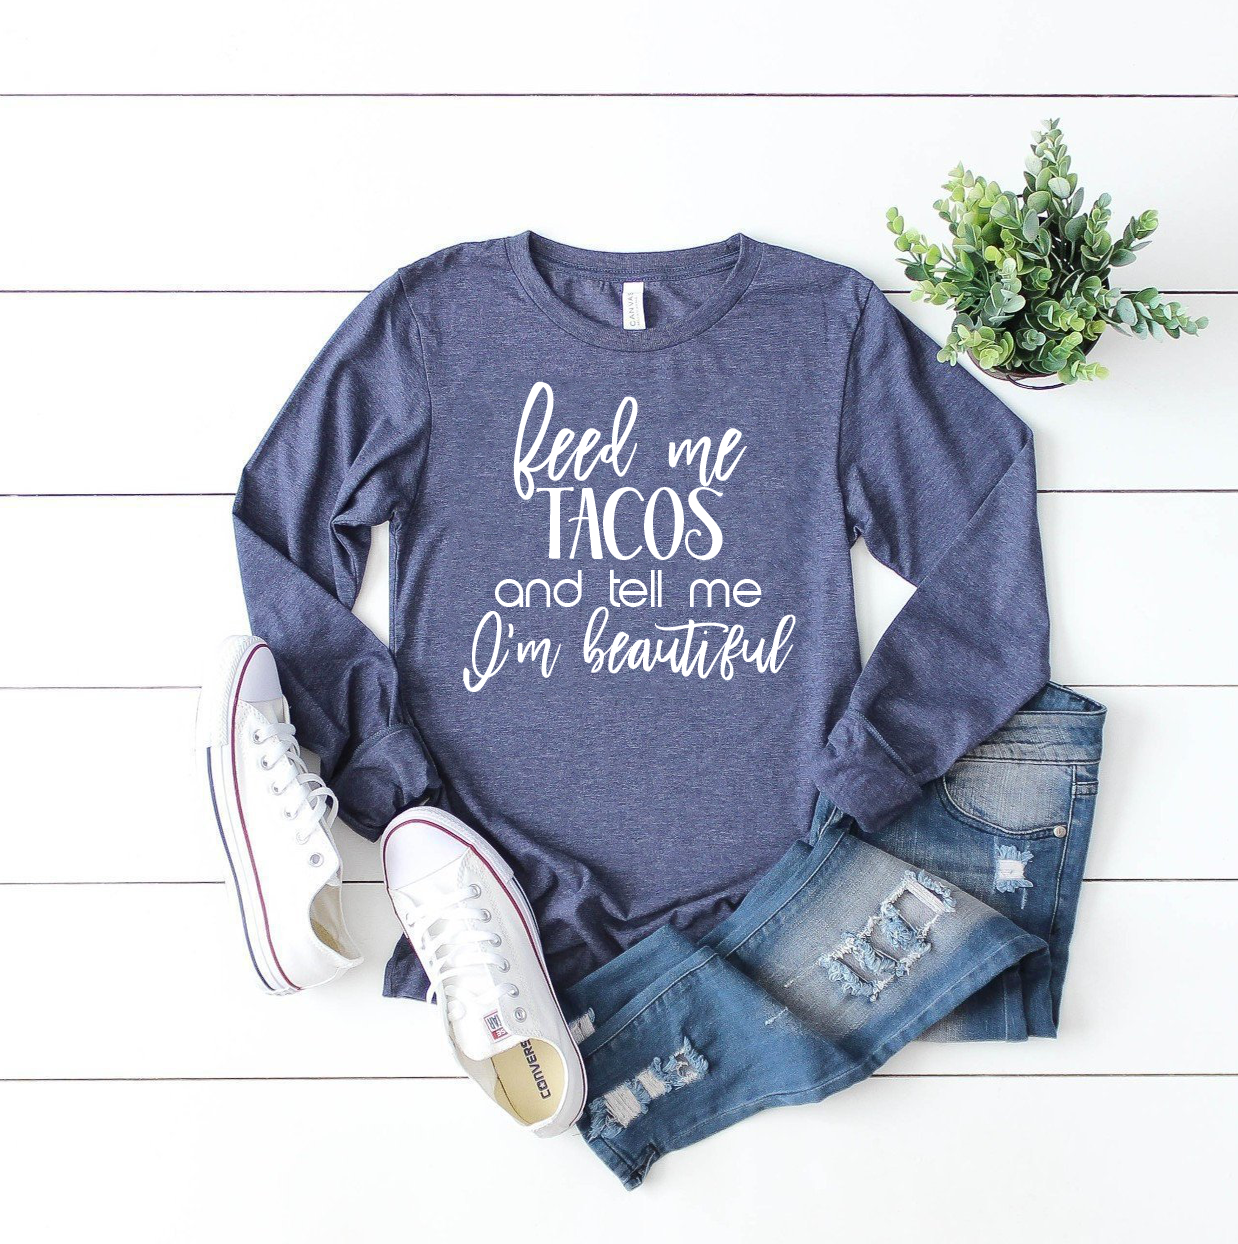 7f621b4b8e8 Feed Me Tacos and Tell Me I m Beautiful Graphic Tee - Long Sleeve ...